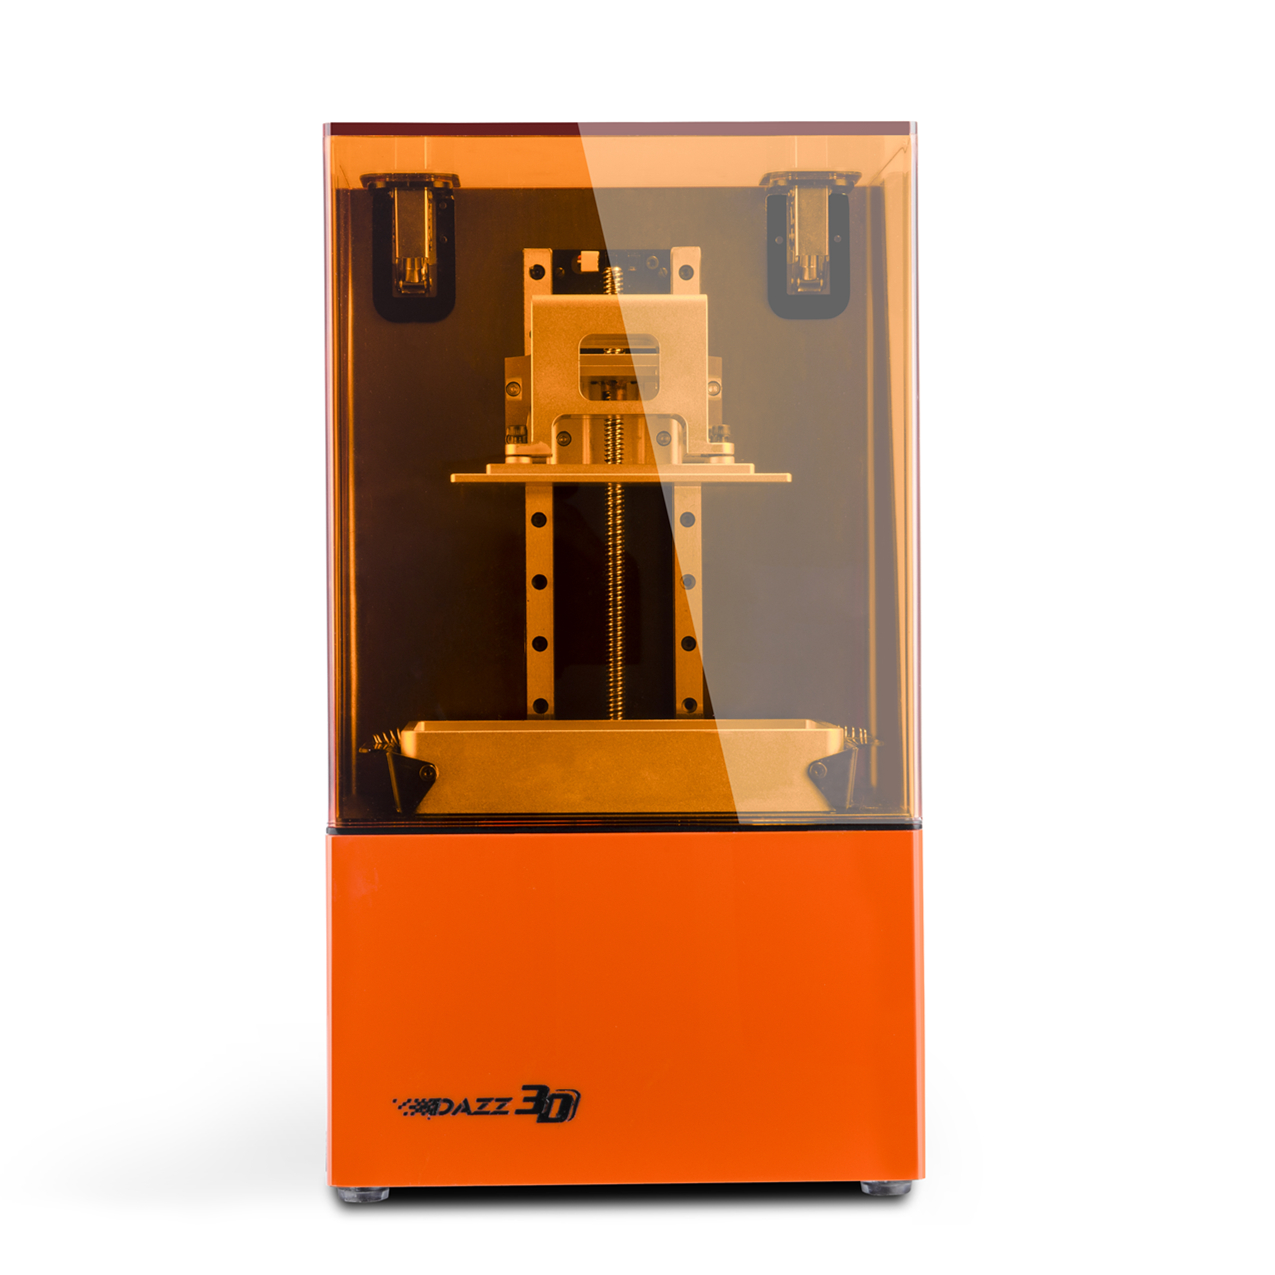 Wax resin dlp 3d printer low price good quality 3d printer jewellery machine